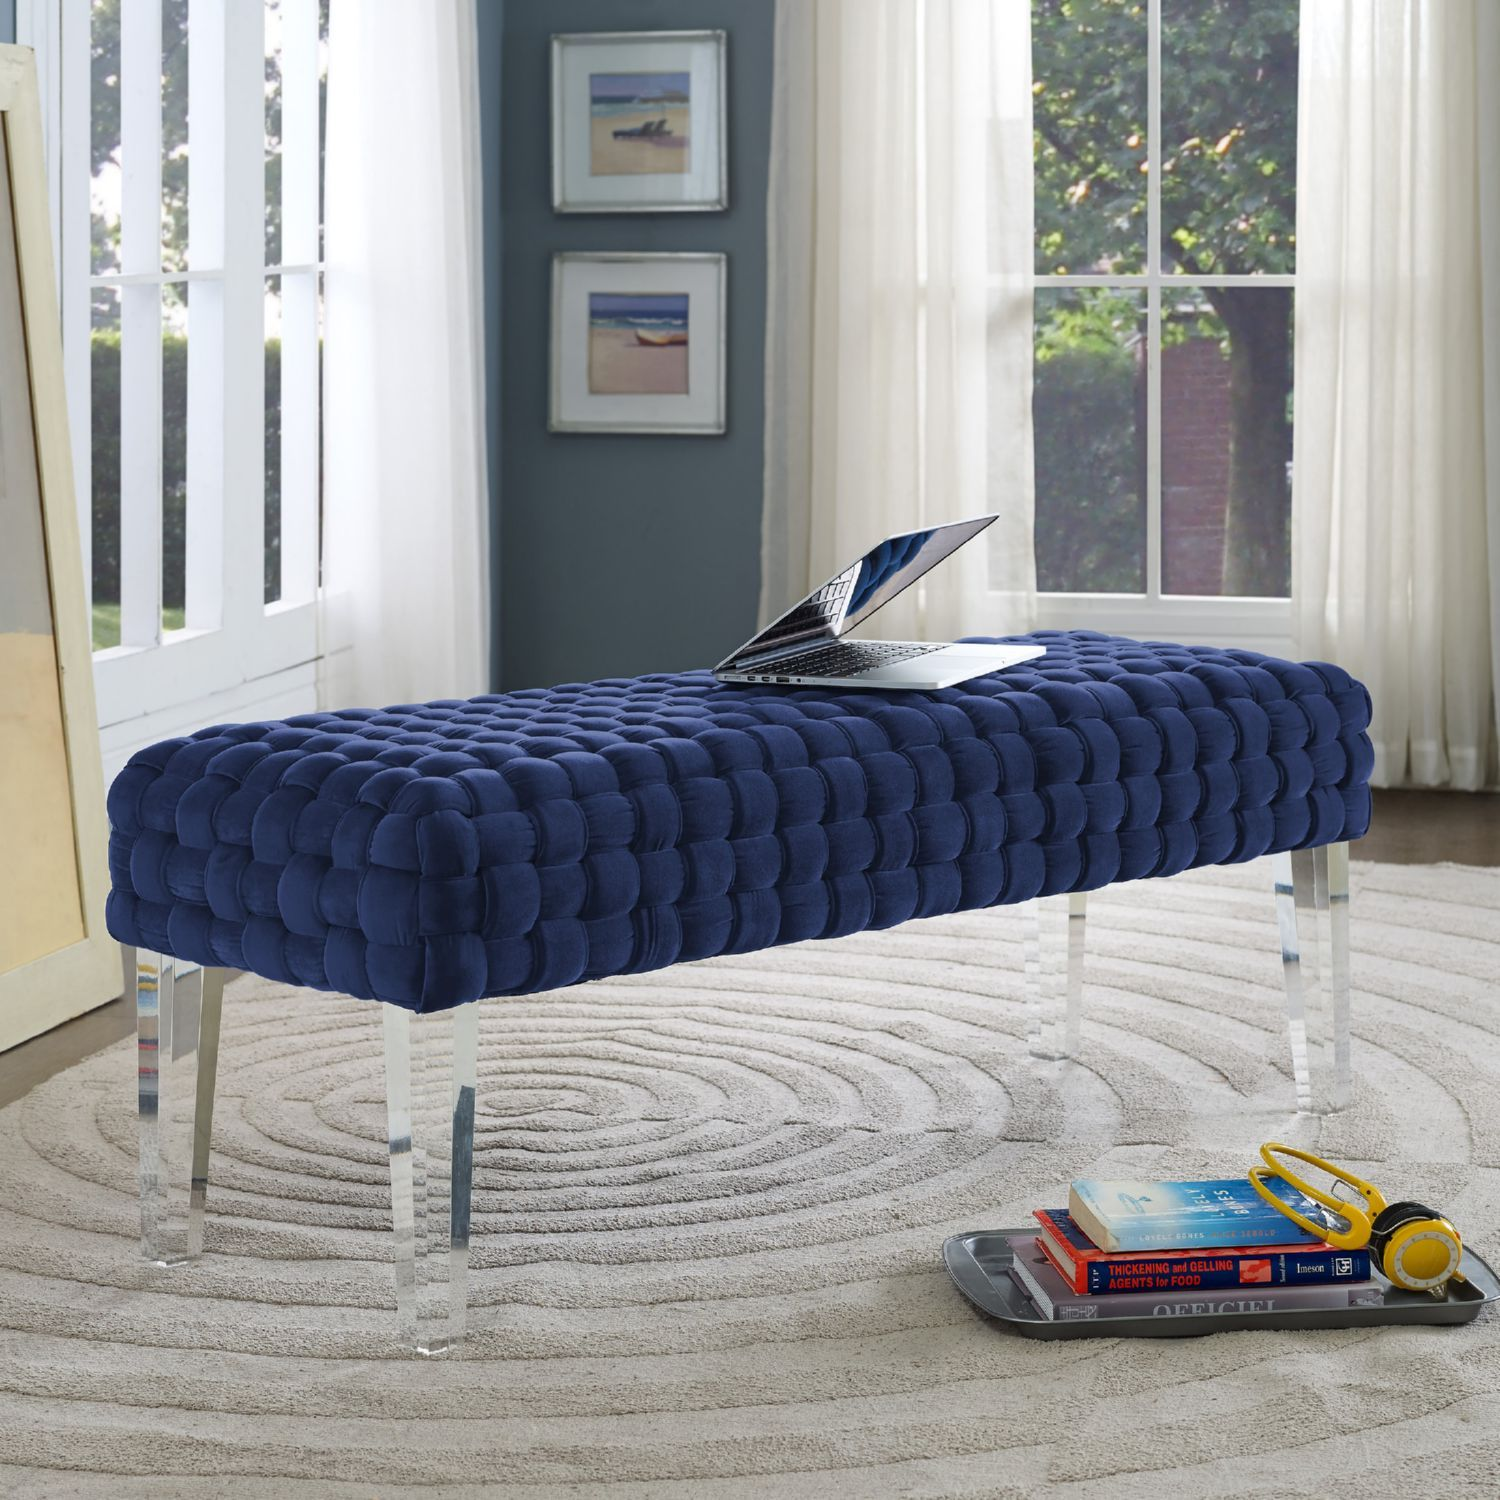 acrylic bedroom furniture. TOV Furniture Sal Bench In Woven Navy Velvet W/ Acrylic Legs Bedroom